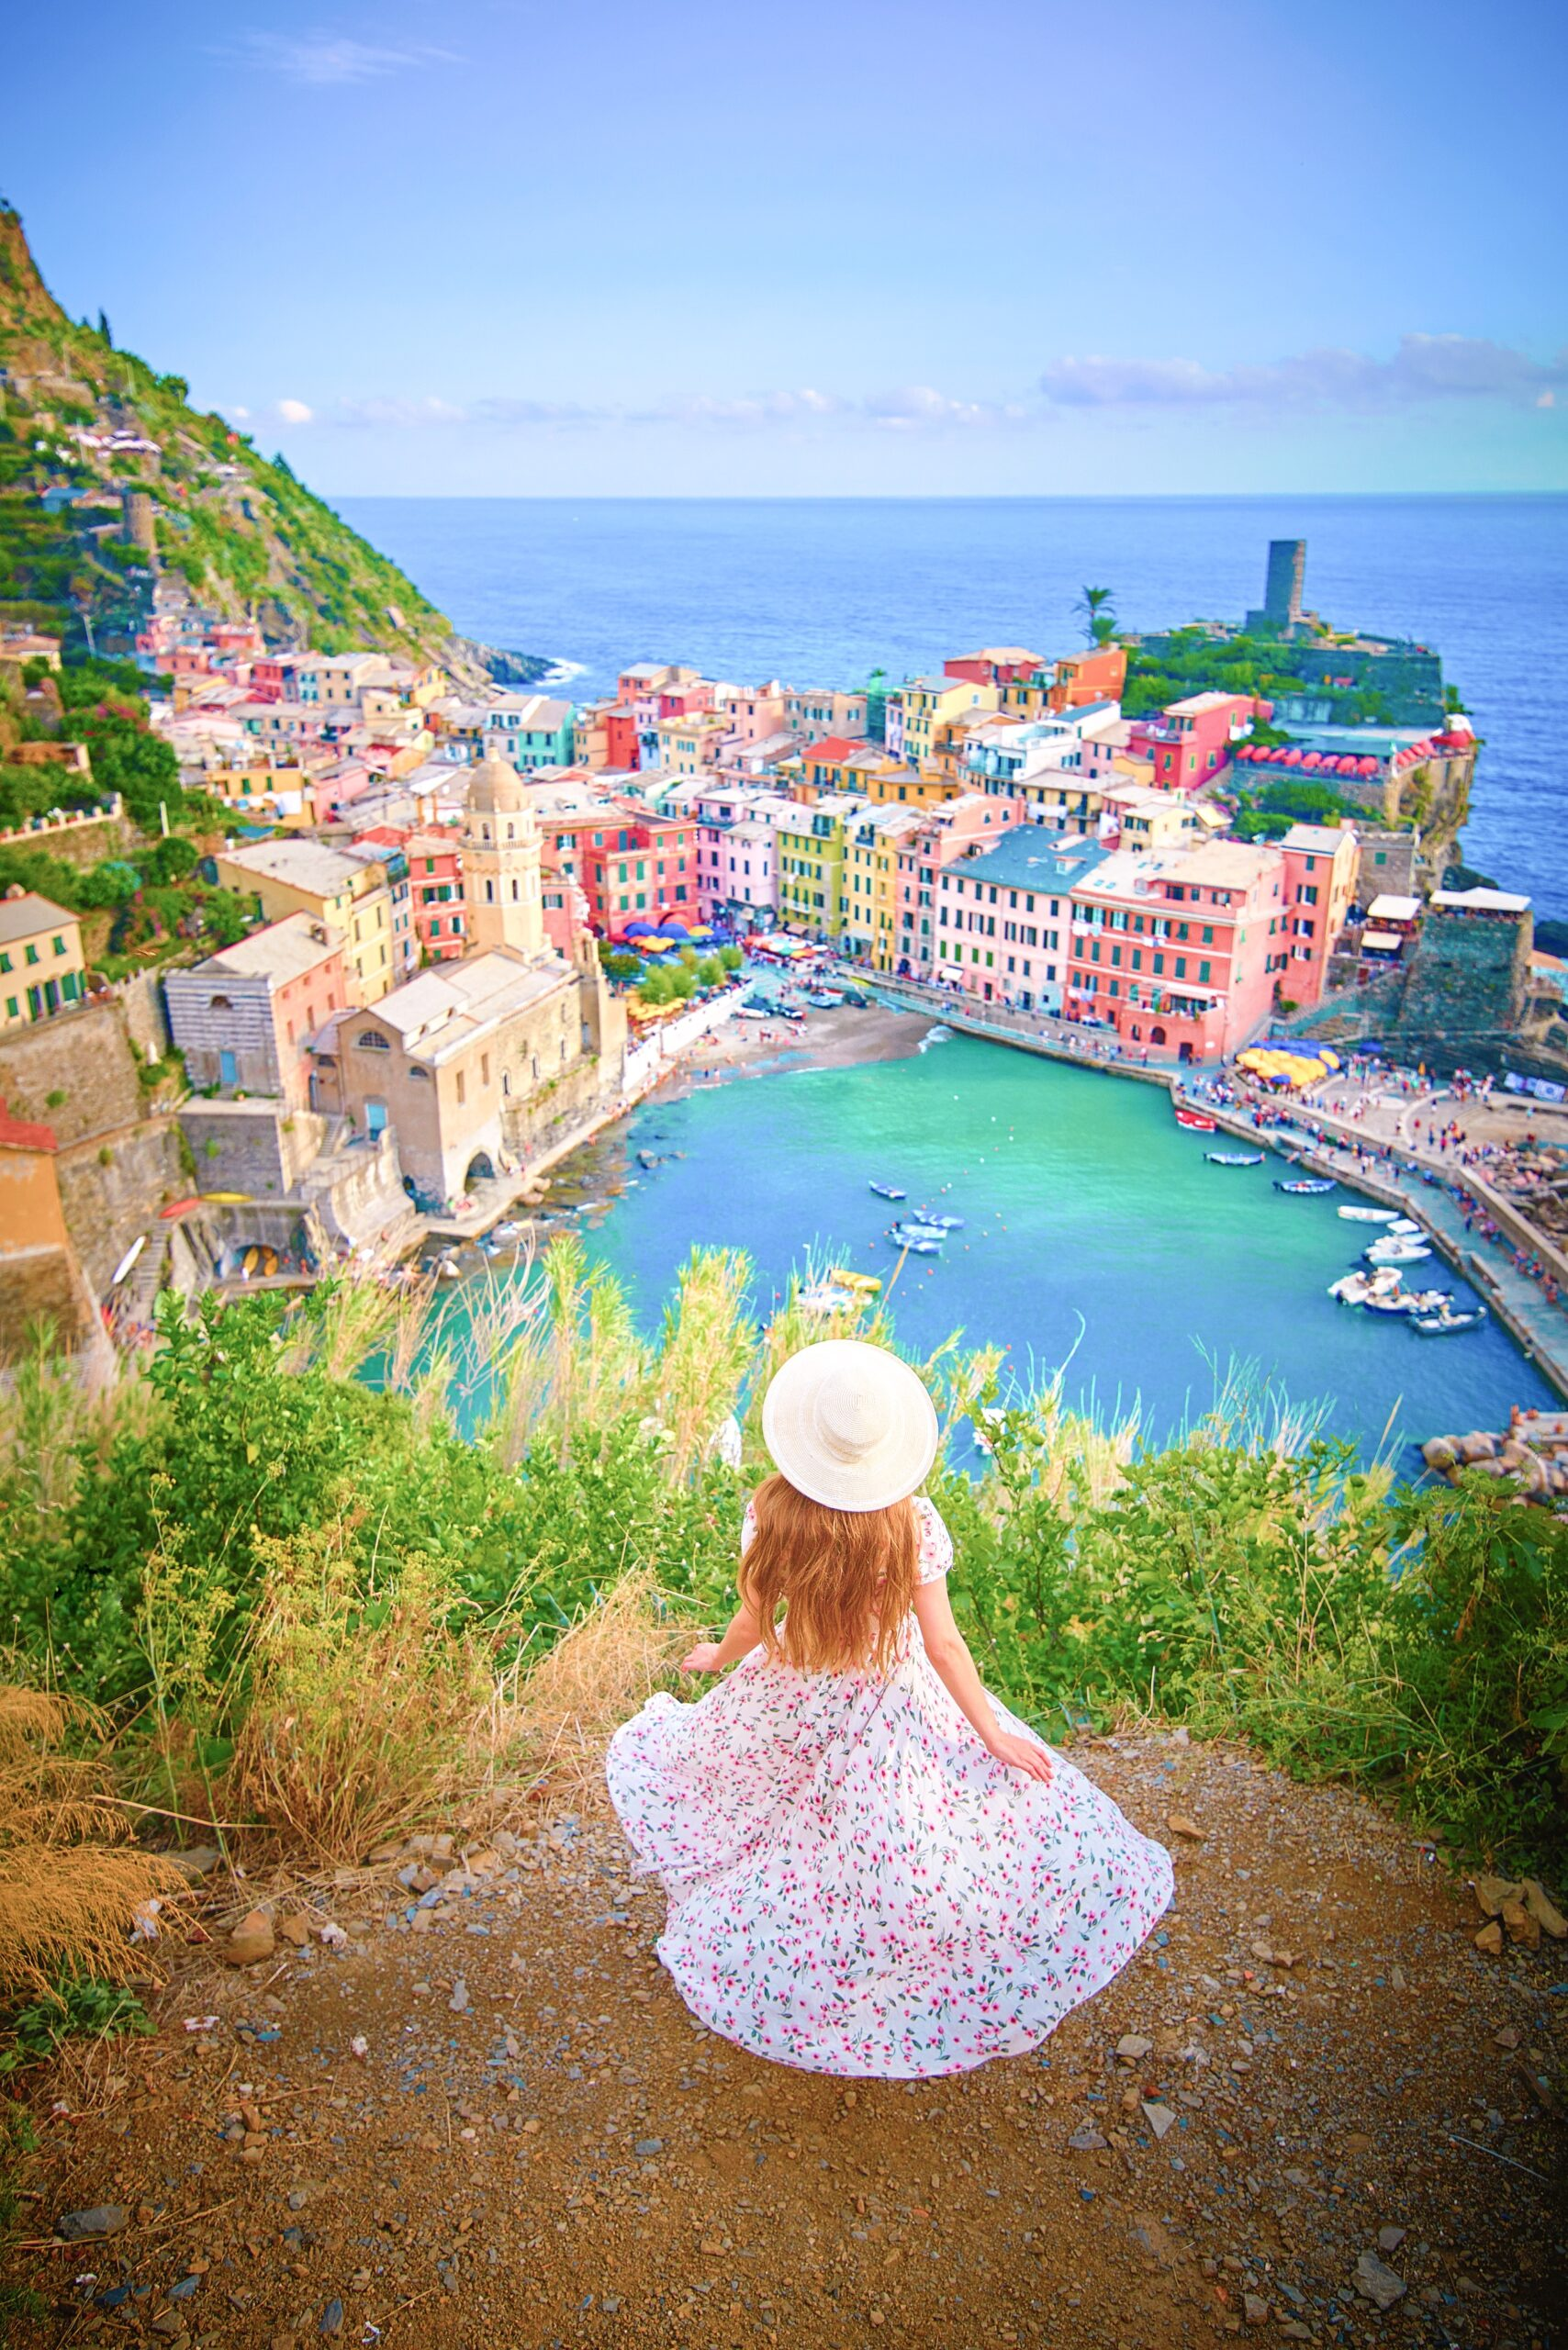 woman in flowery dress in front of teal waters and colorful buildings of Cinque Terre Northern Italy itinerary